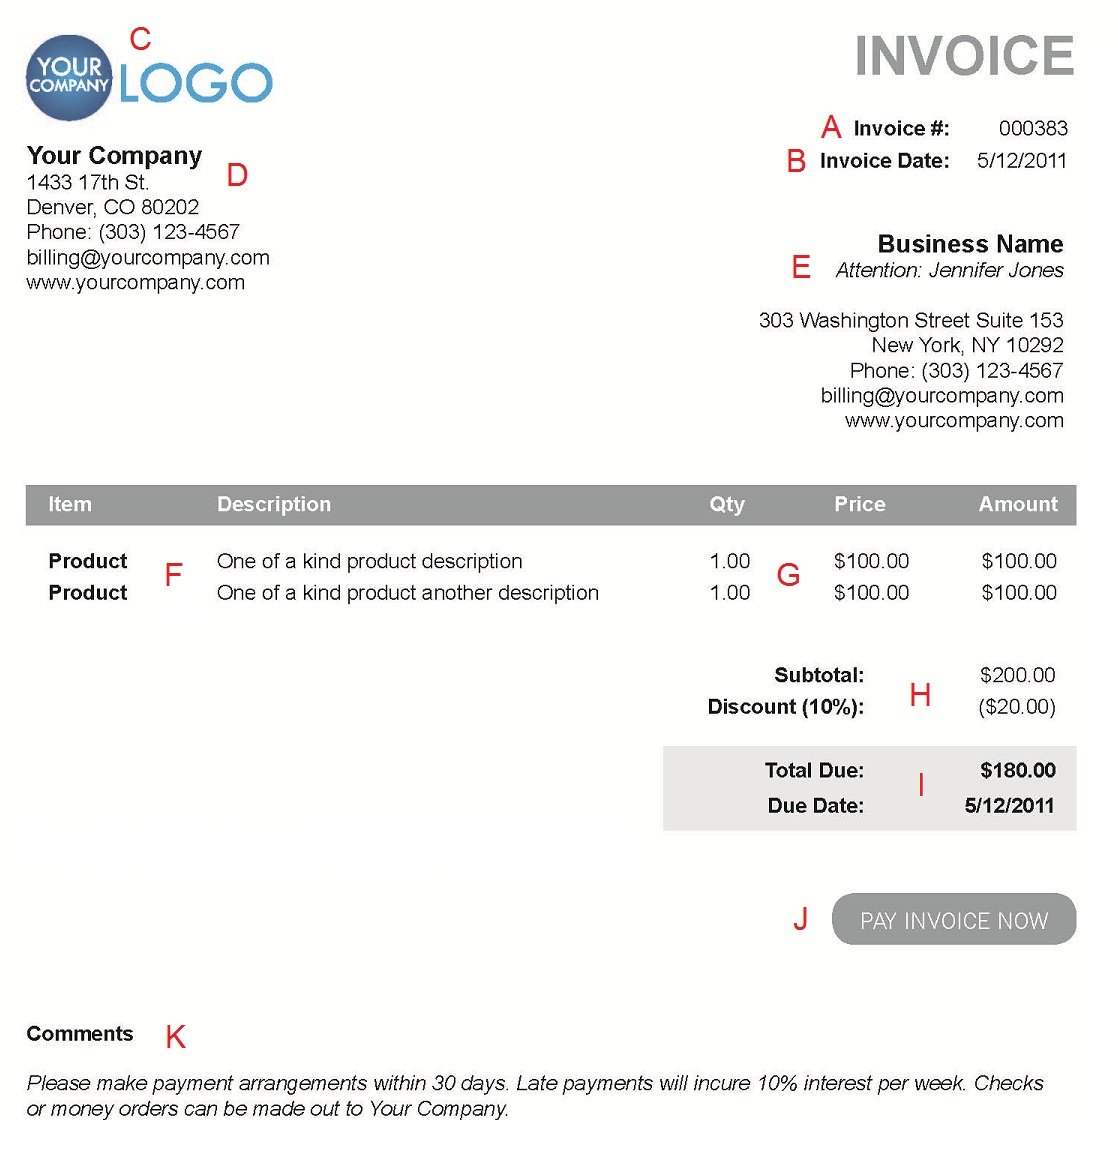 Centralasianshepherdus  Surprising The  Different Sections Of An Electronic Payment Invoice With Licious A  With Divine Receipt Of Goods Definition Also Refund Without Receipt In Addition Best Receipt Scanner App Android And Rent Receipts Format As Well As Receipt Notification Additionally Spell Receipt Dictionary From Paysimplecom With Centralasianshepherdus  Licious The  Different Sections Of An Electronic Payment Invoice With Divine A  And Surprising Receipt Of Goods Definition Also Refund Without Receipt In Addition Best Receipt Scanner App Android From Paysimplecom